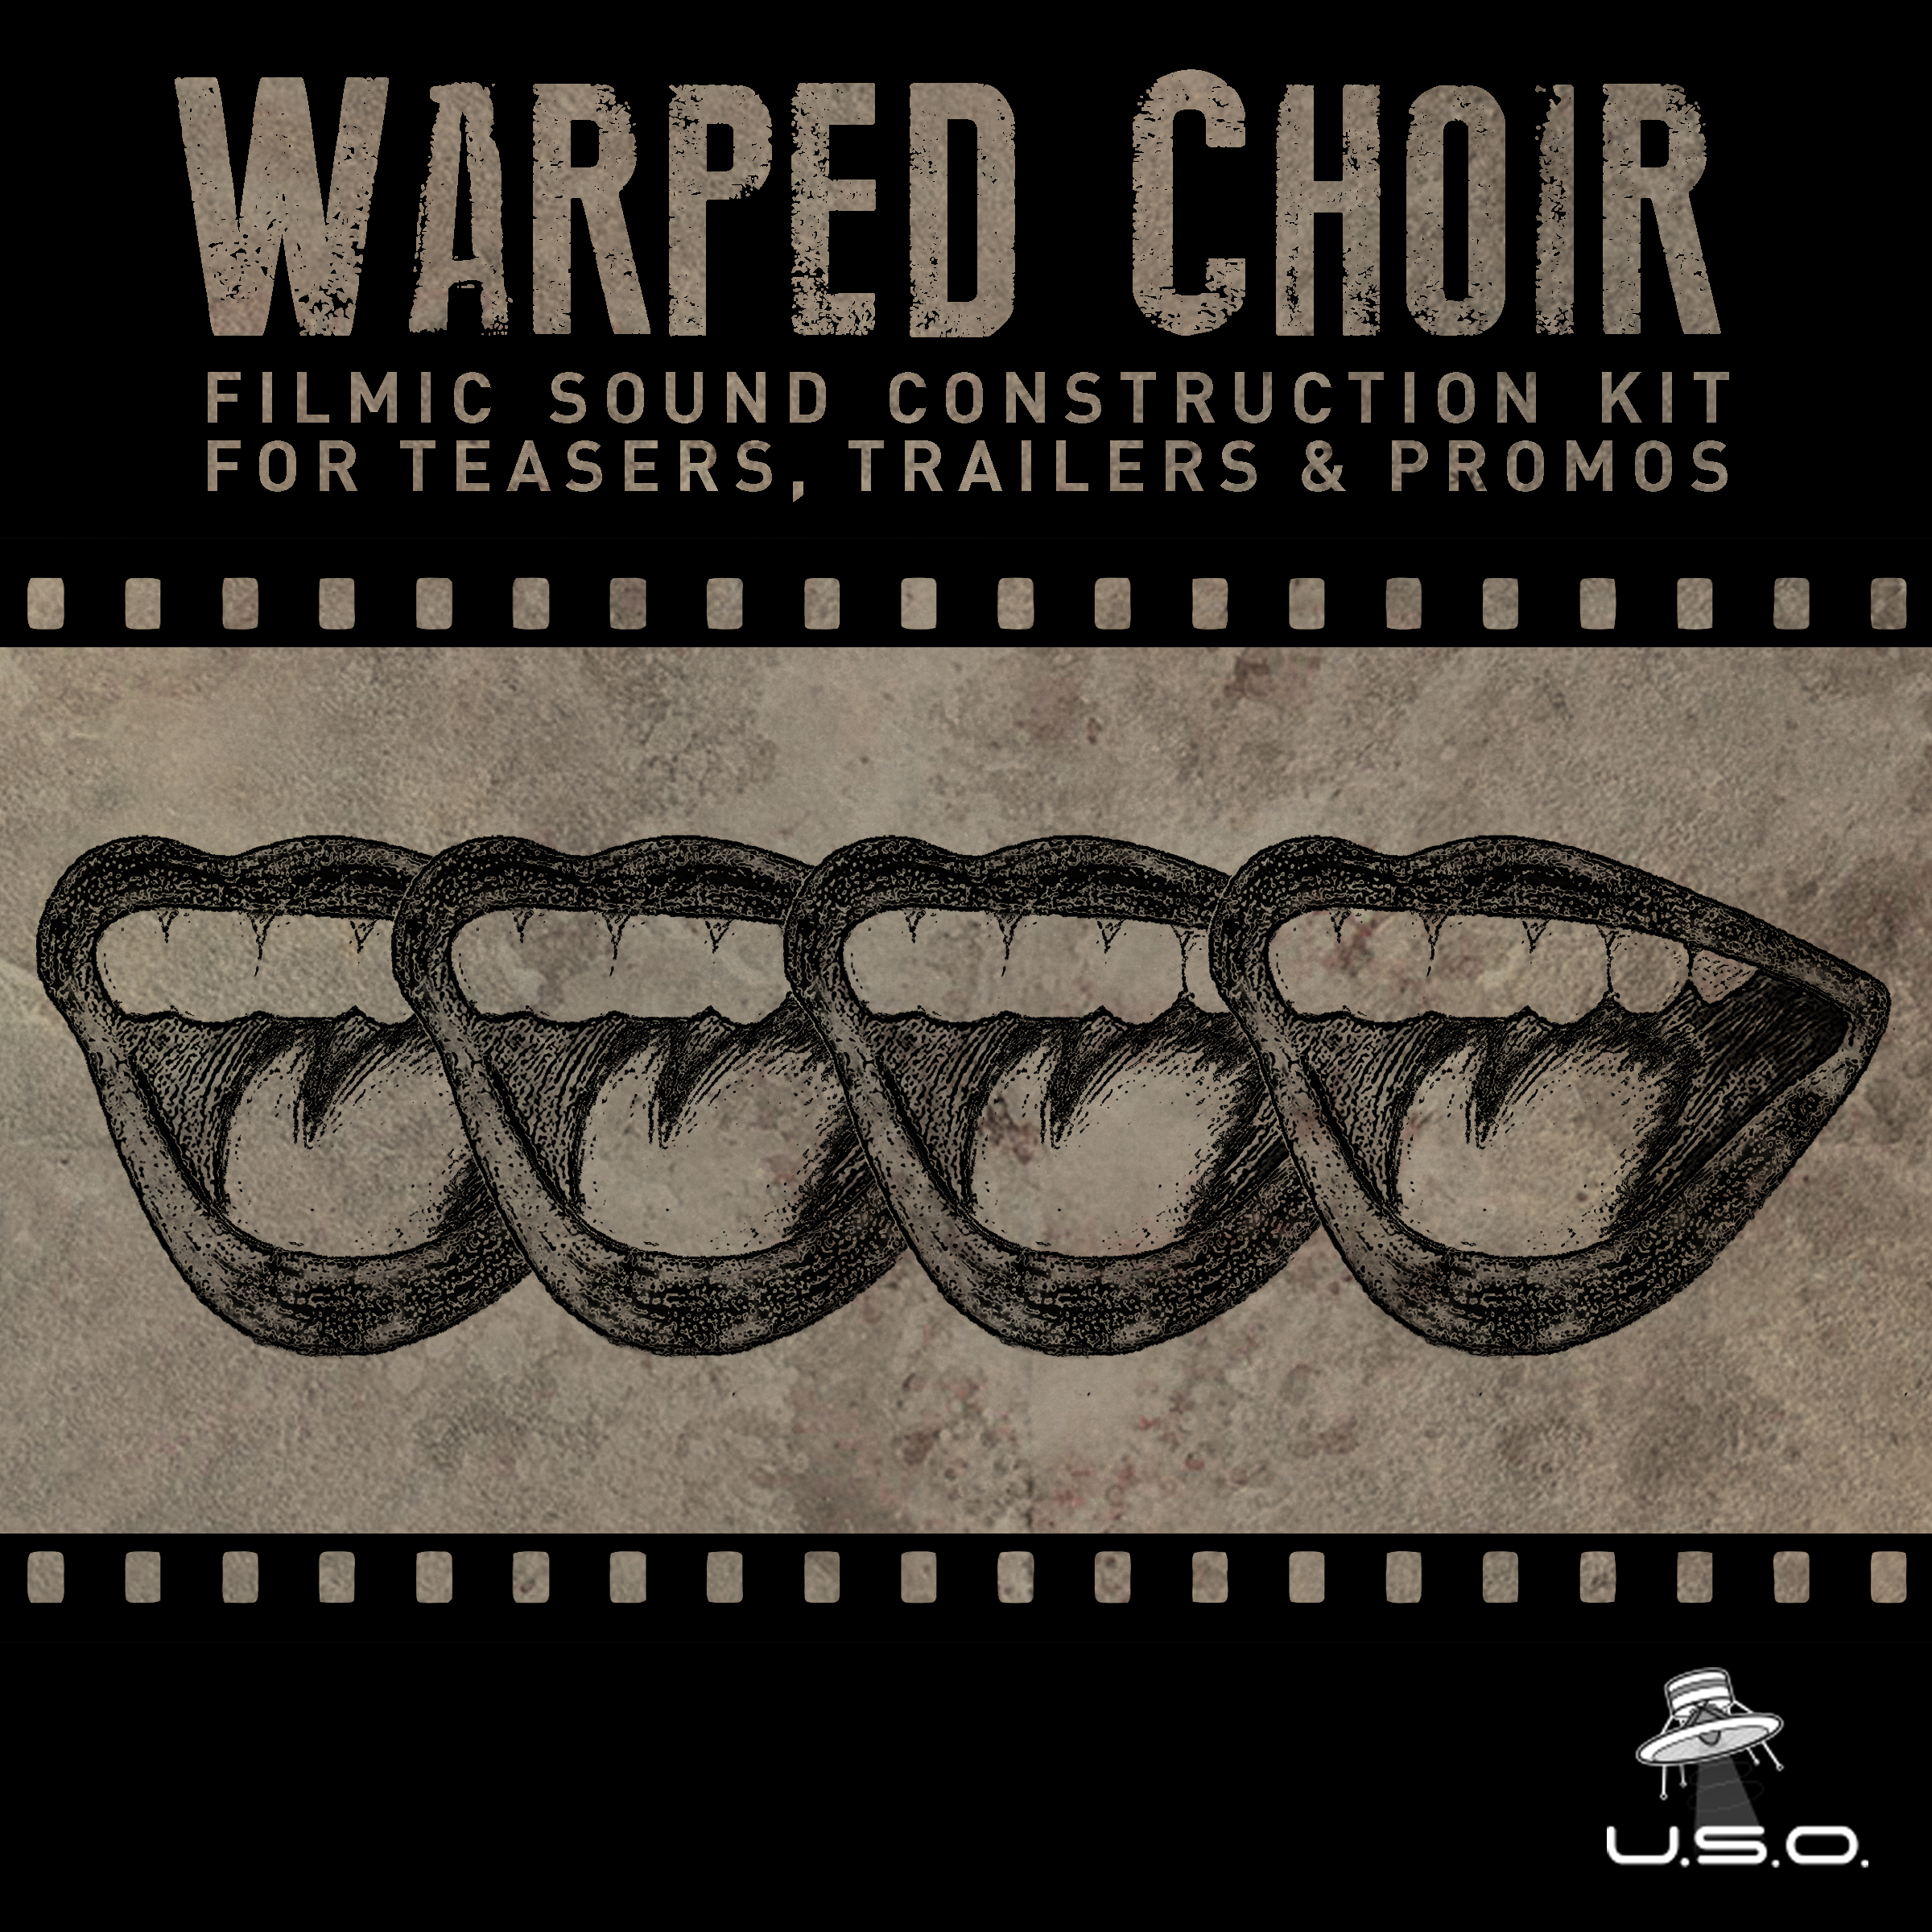 Warped Choir - a filmic sound construction kit